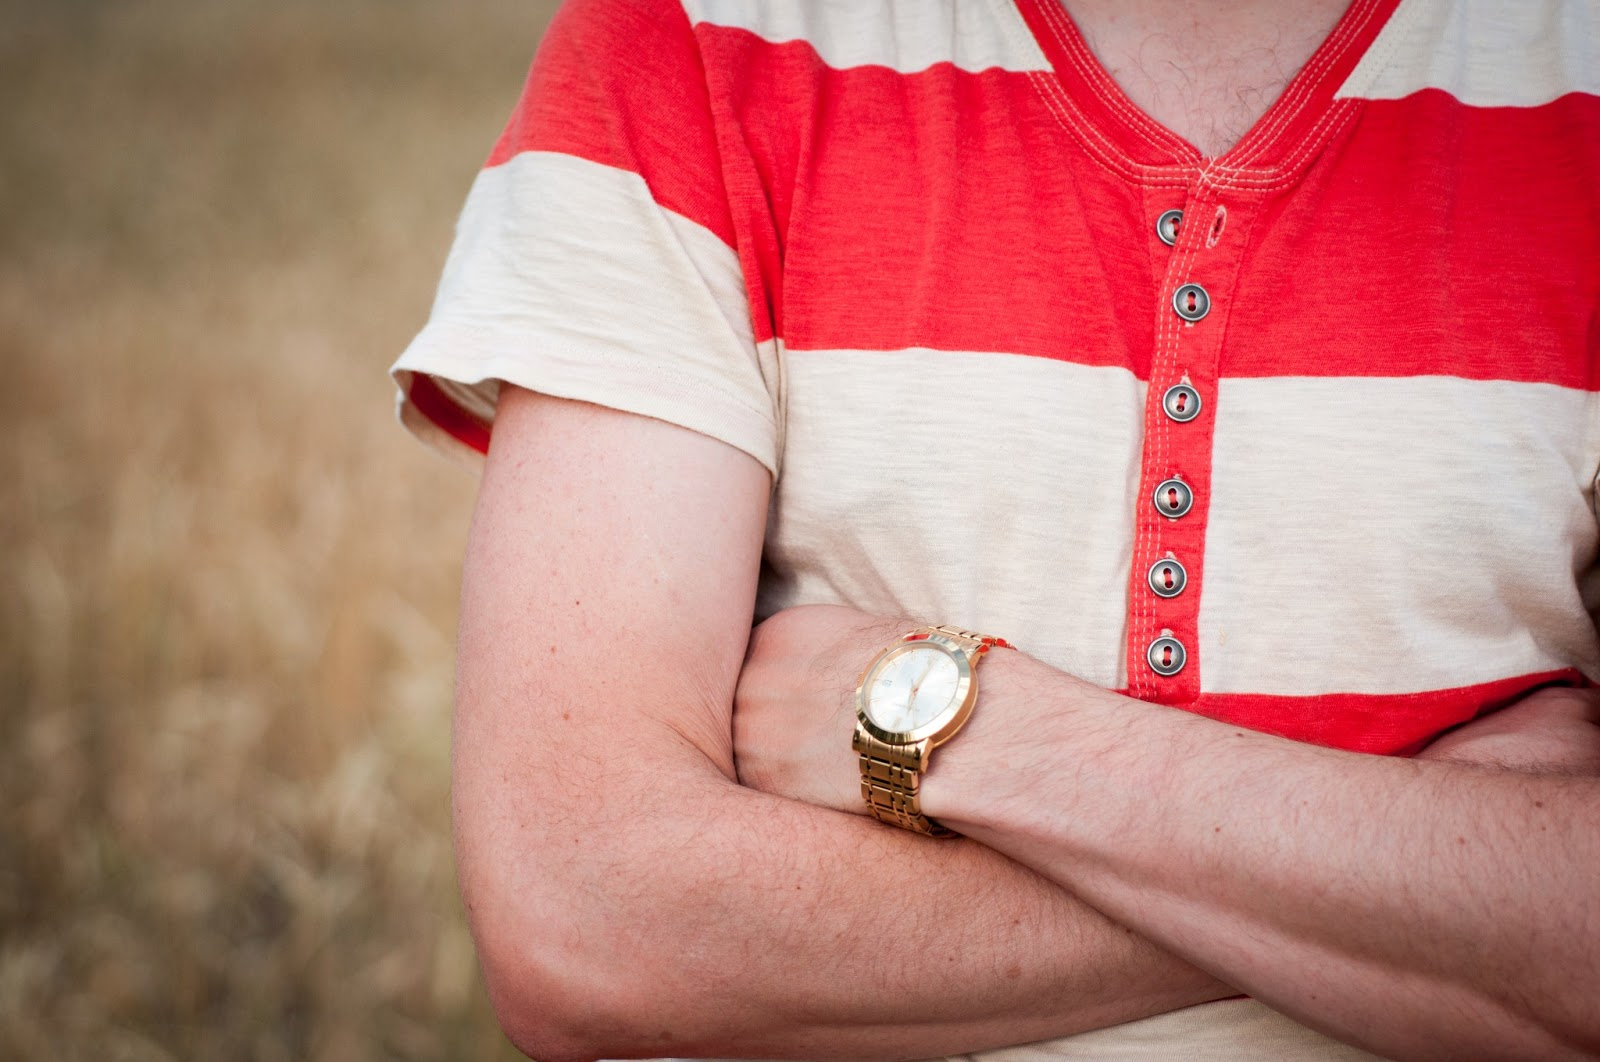 mens style blog, mens fashion blog, burberry, burberry watch, urban outfiters, ootd, stripes